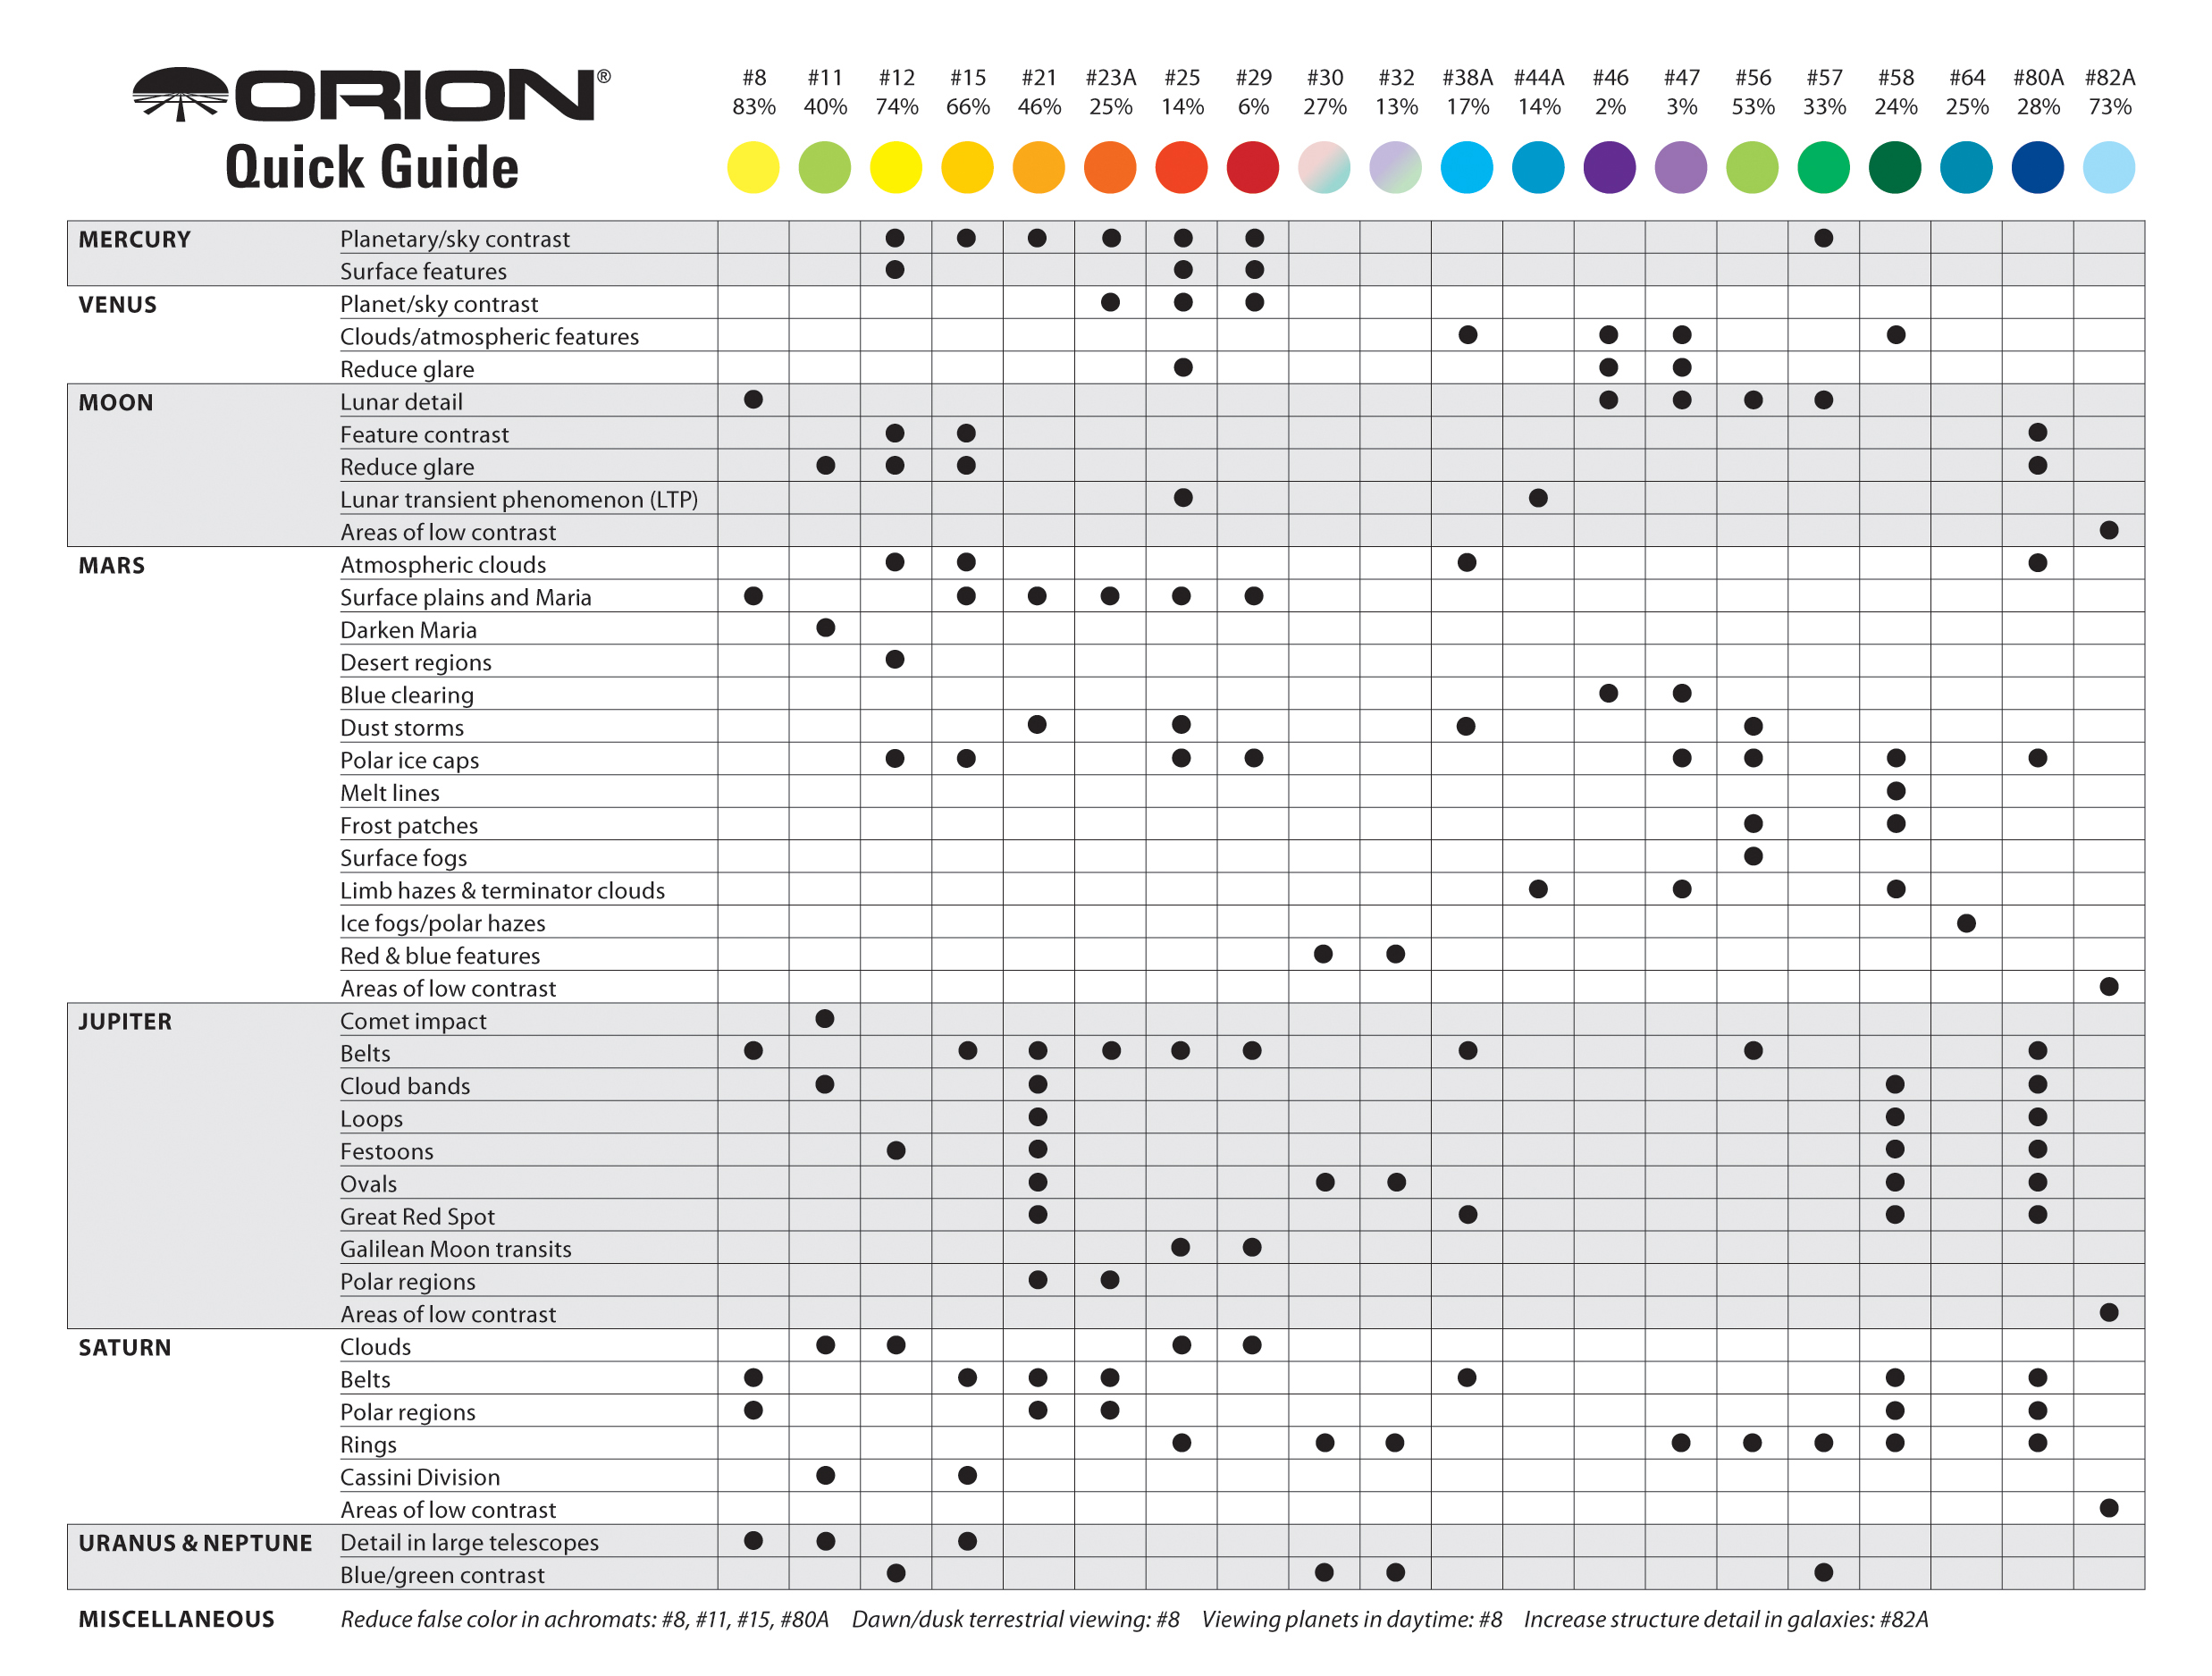 Orion Premium 20-Piece Color Planetary Filter Set Guide